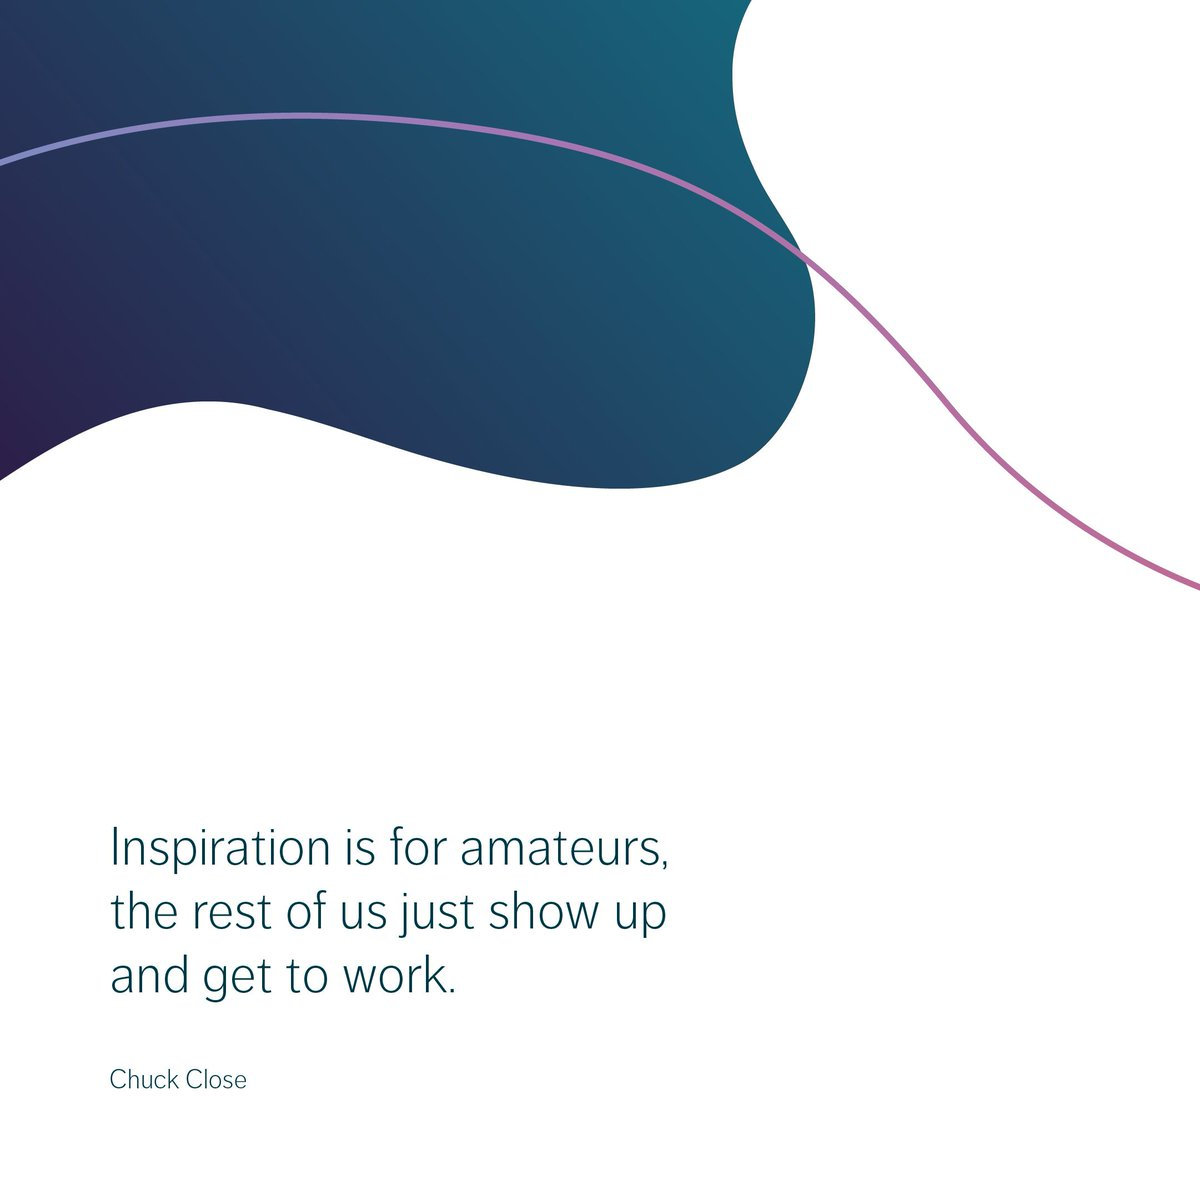 Inspiration is for amateurs, the rest of us just show up and get to work. - Chuck Close  #life #arte #beauty #draw #instaart #creative #sketchbook #fun #artist #graphic #graphicdesign #inspiration #smallbusiness #website #illustration #quote #quoteoftheday #daily #motivation https://t.co/1hzUwqOvAu